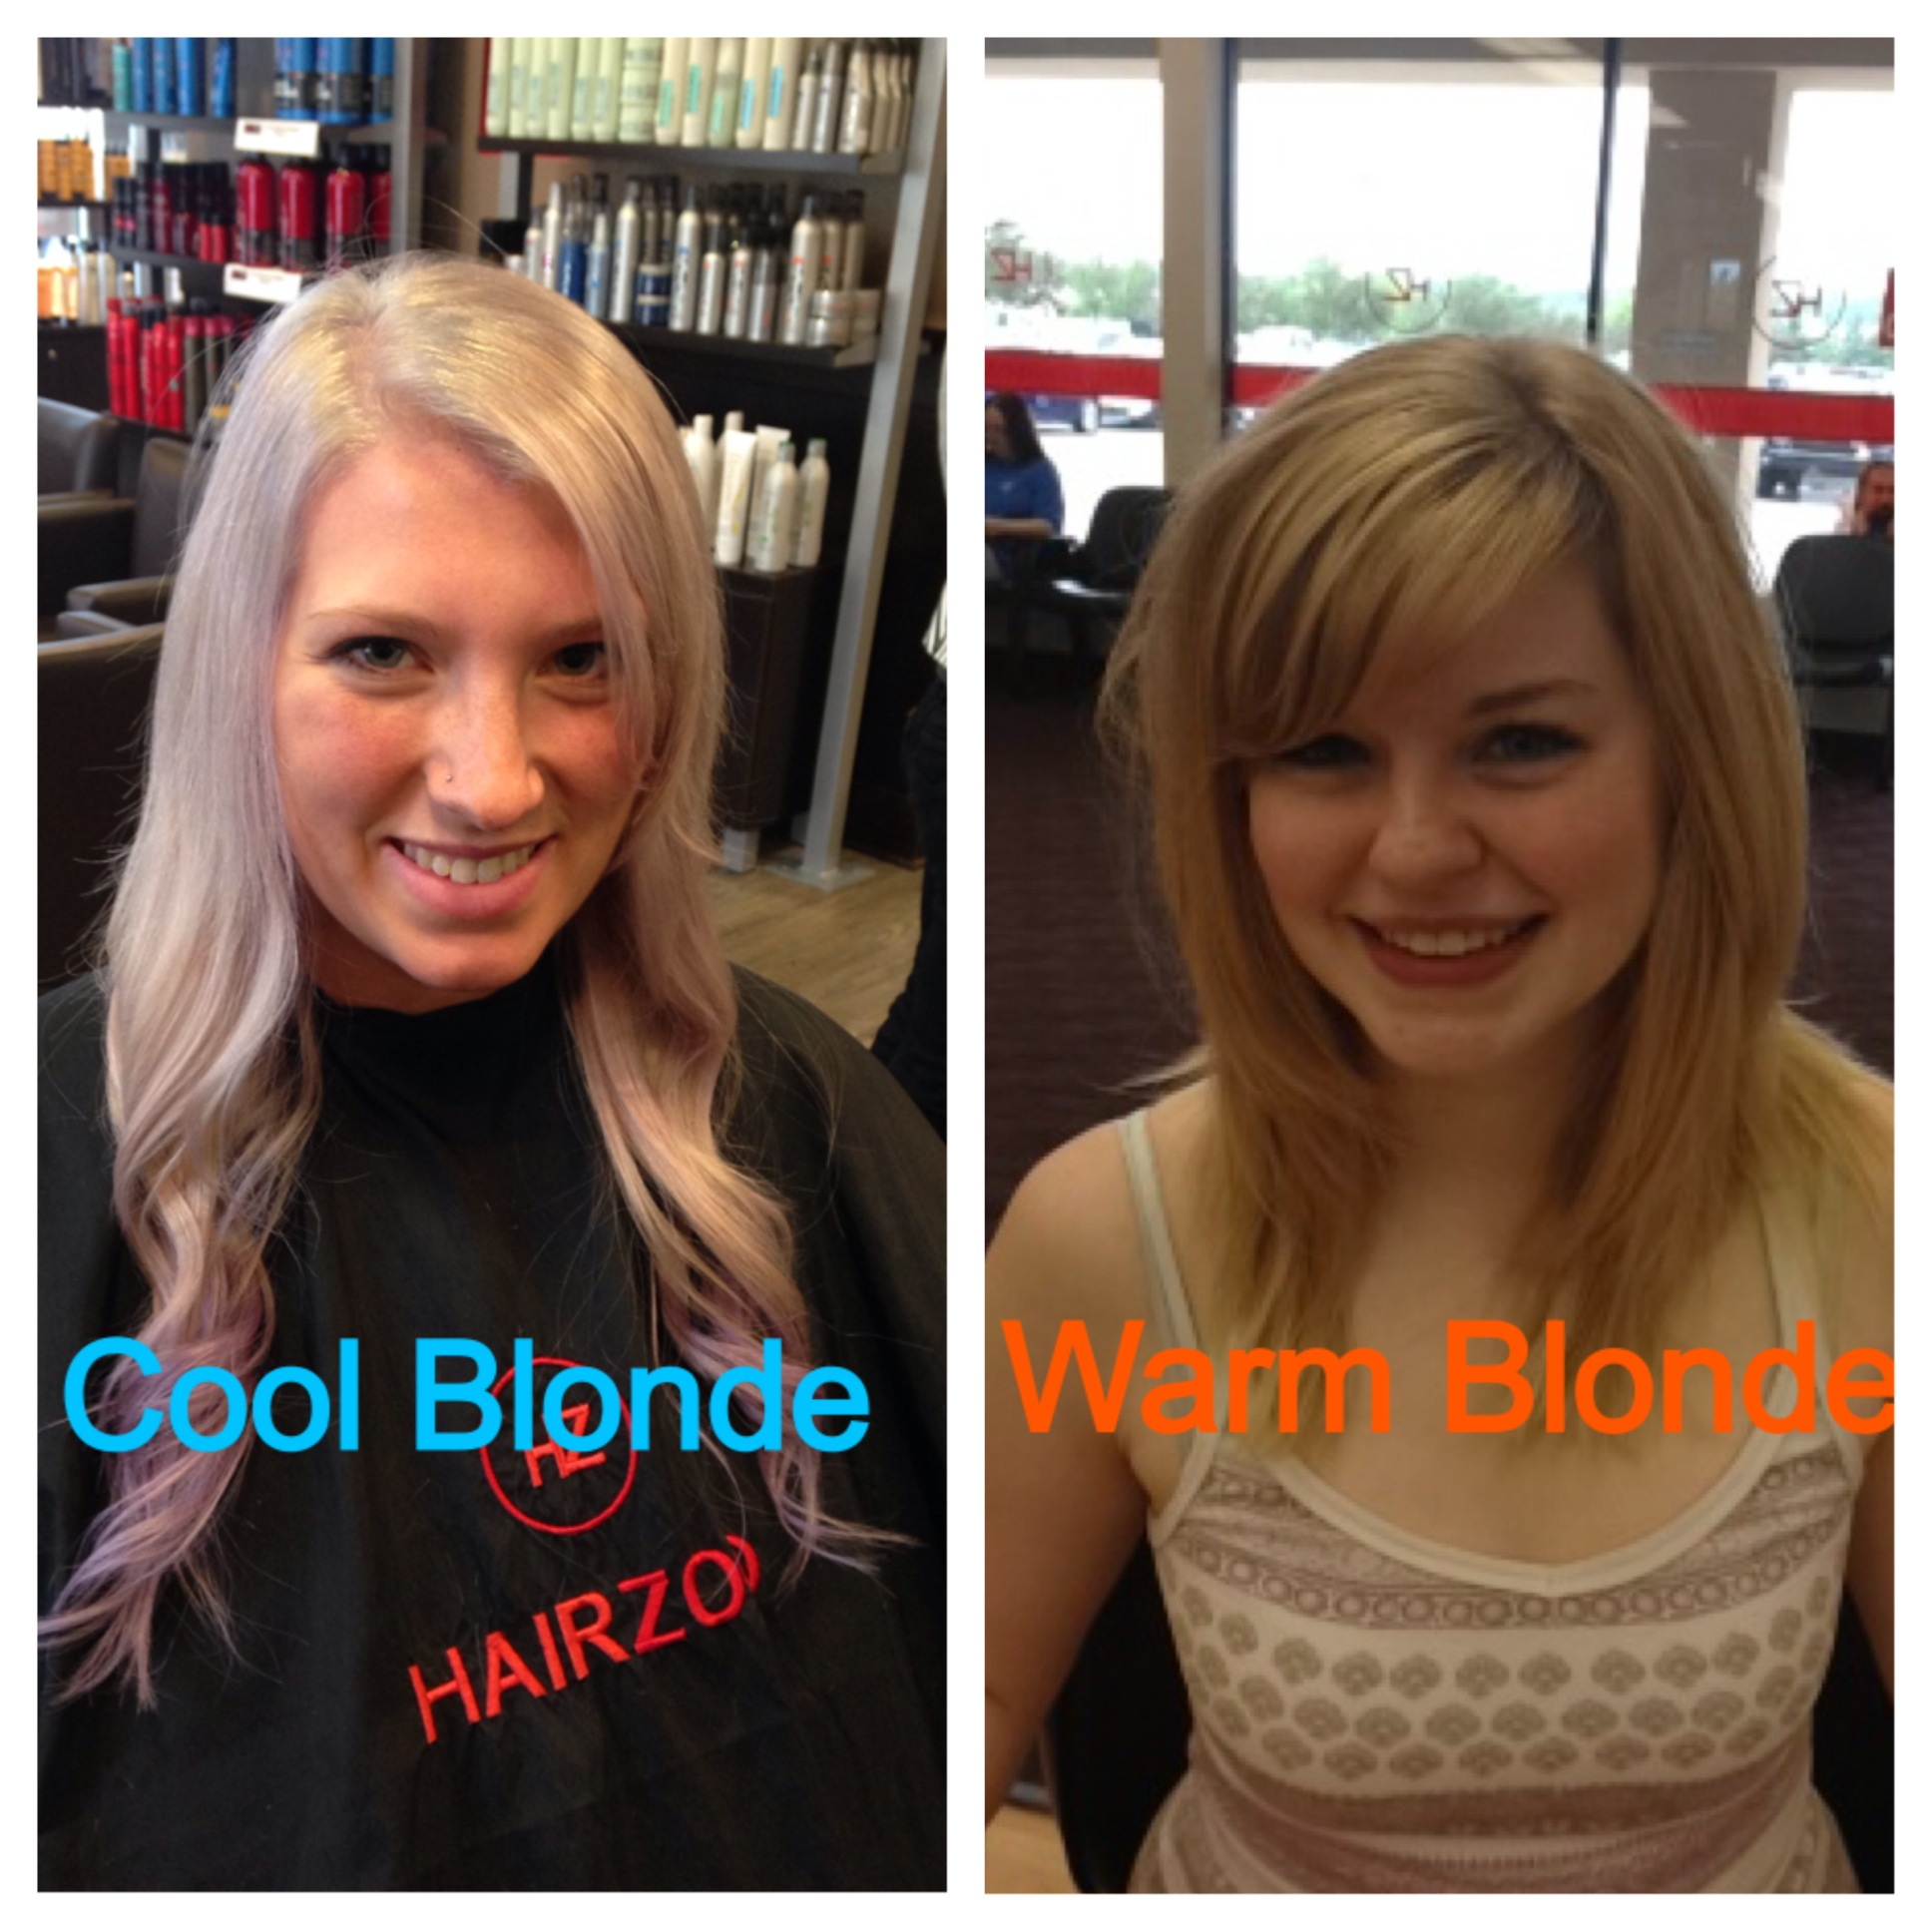 When Deciding A Hair Color Figuring Out Whether You Want Warm Or Cool Shade Is Vital Part Of The Process